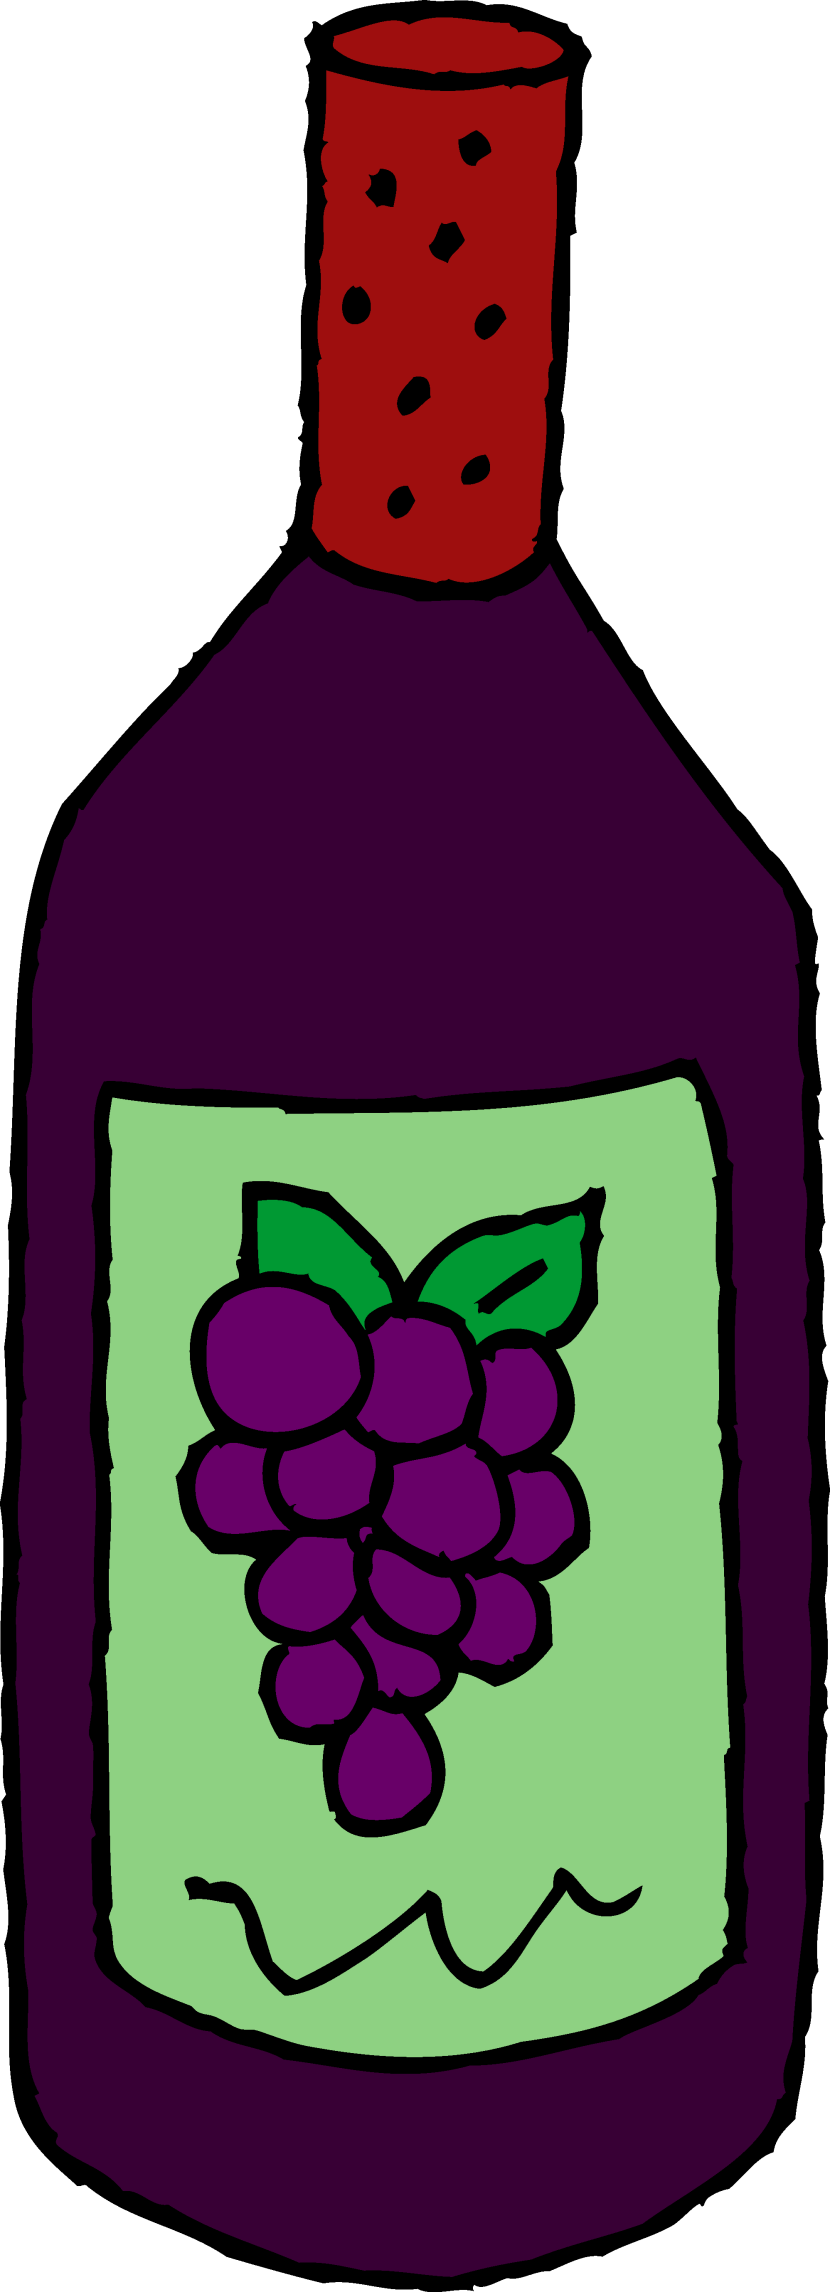 Wine clipart images for personal use